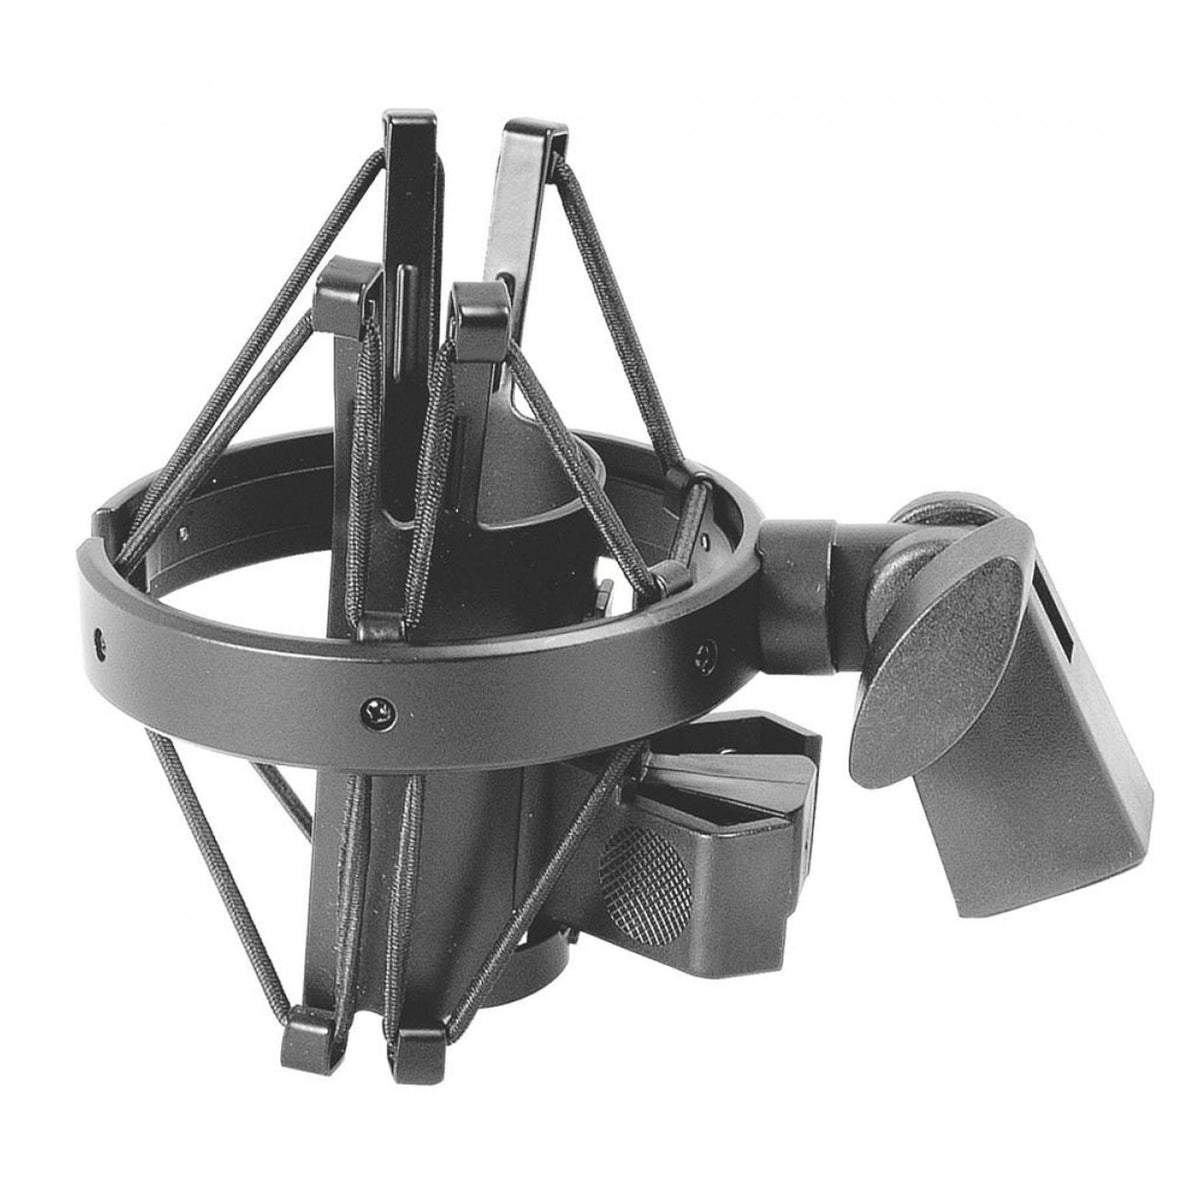 Black Shock Mount for Audio-Technica AT4041 Microphone